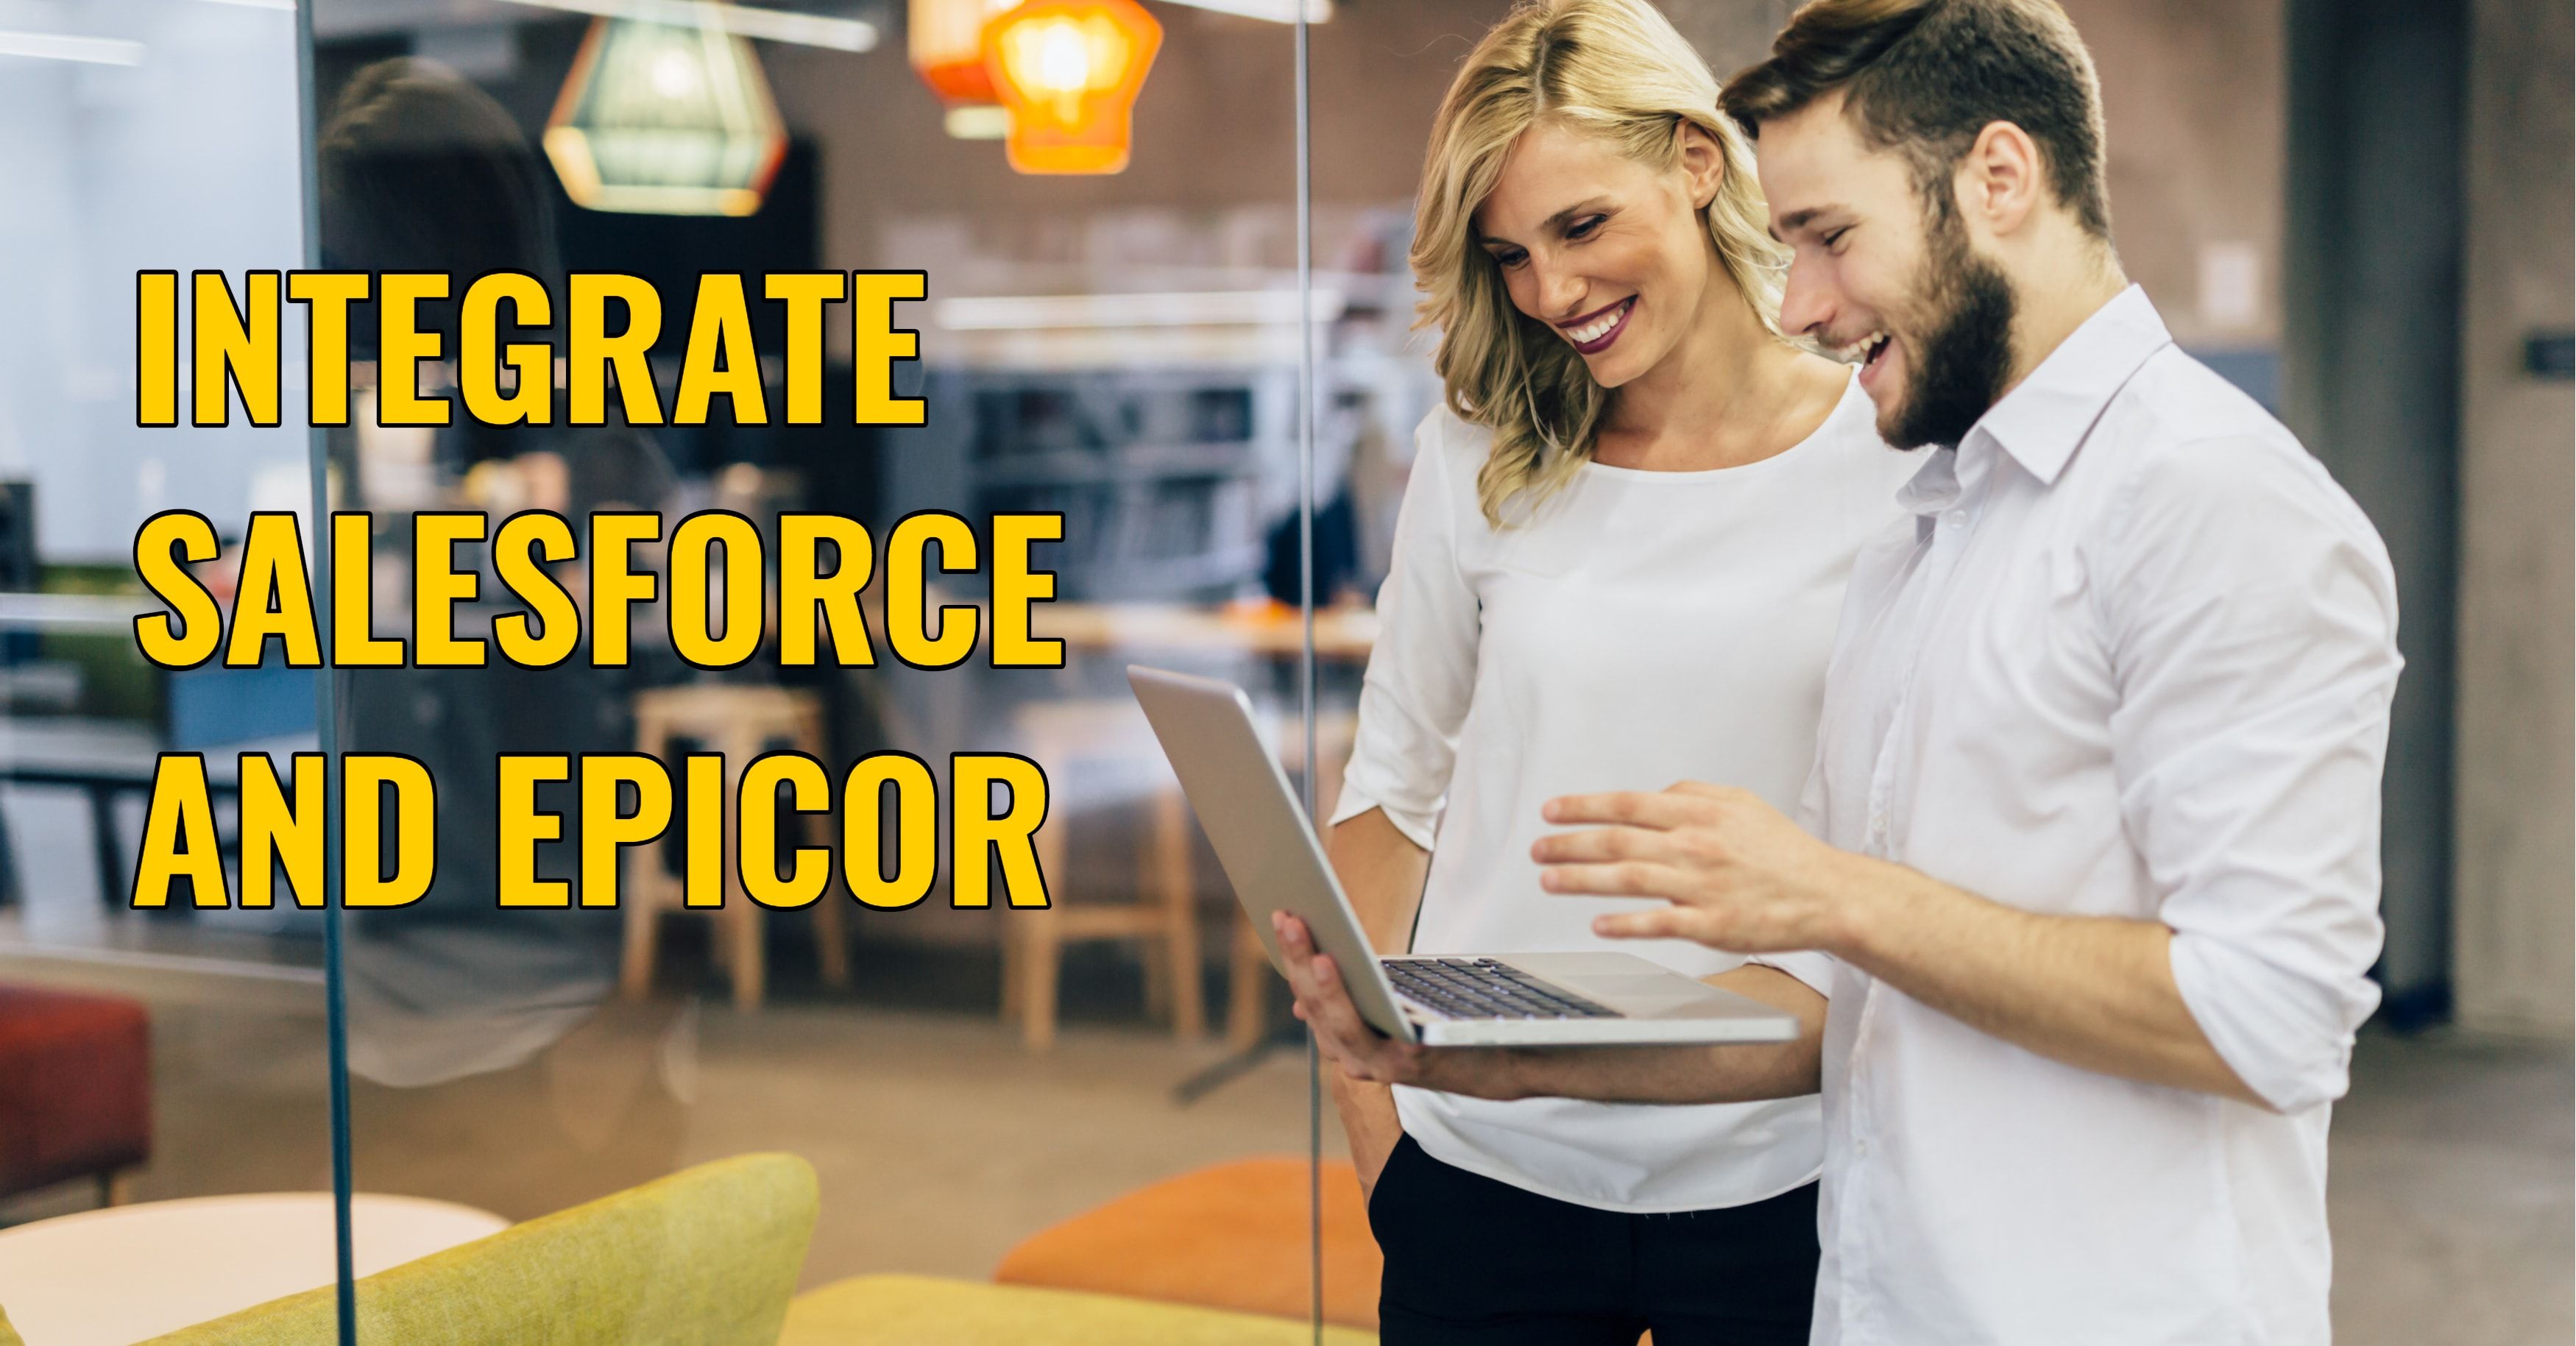 3 Powerful Benefits of Syncing Epicor and Salesforce Data